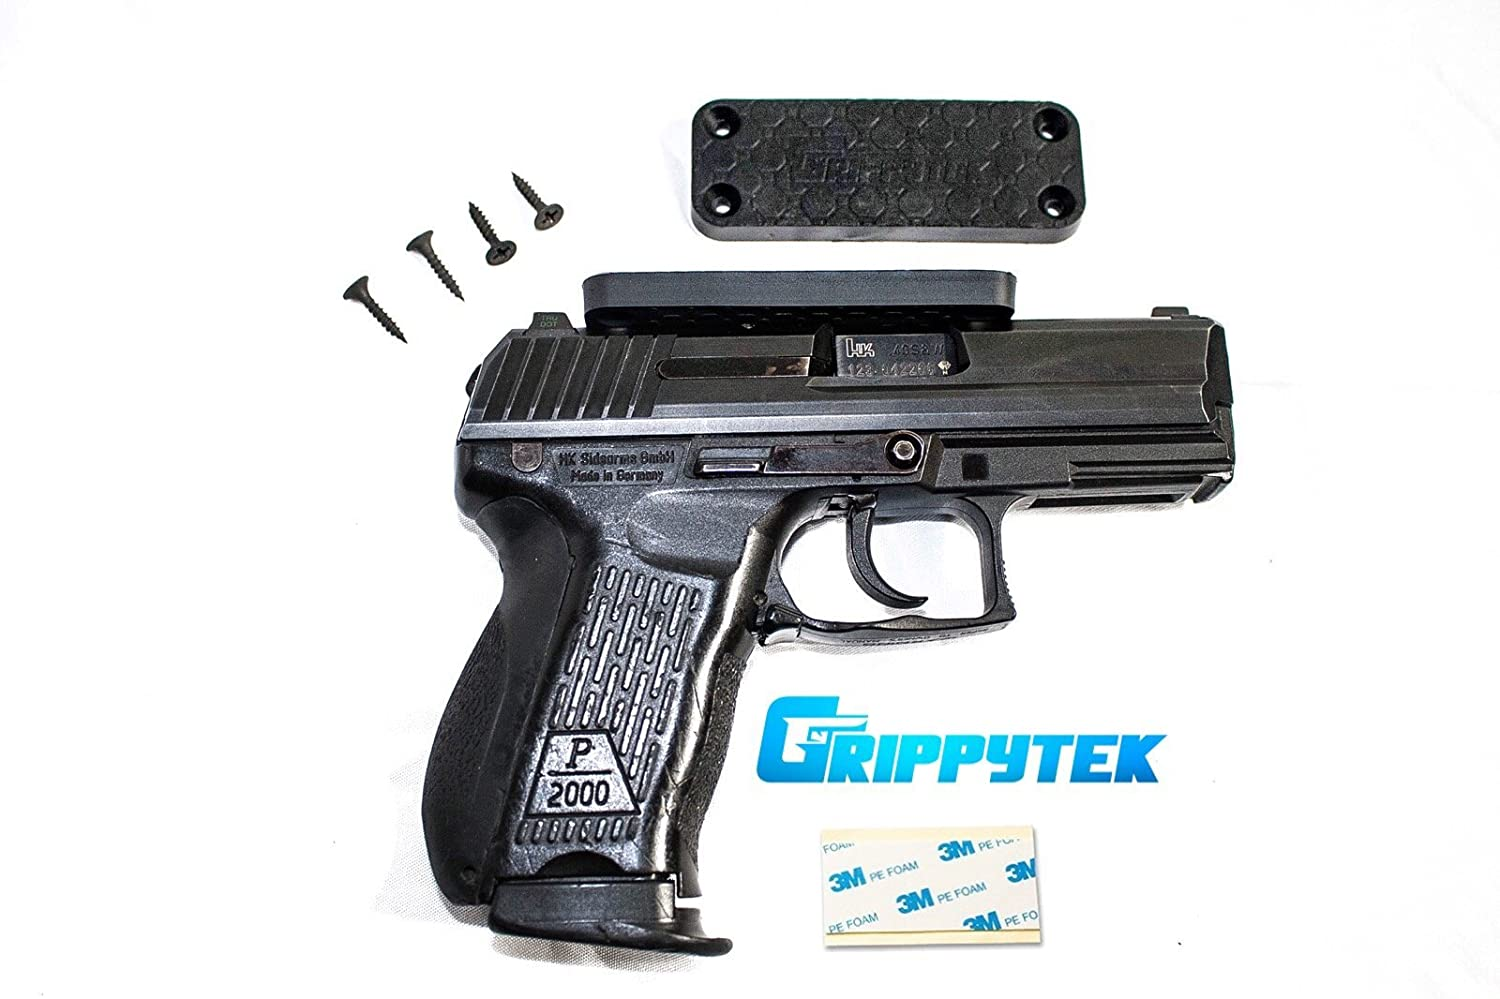 Grippytek Magnetic Gun Mount Holster For Vehicle And How To Build Home Rubber Coated 43 Lbs Rated Firearm Accessory Concealed Holder Handgun